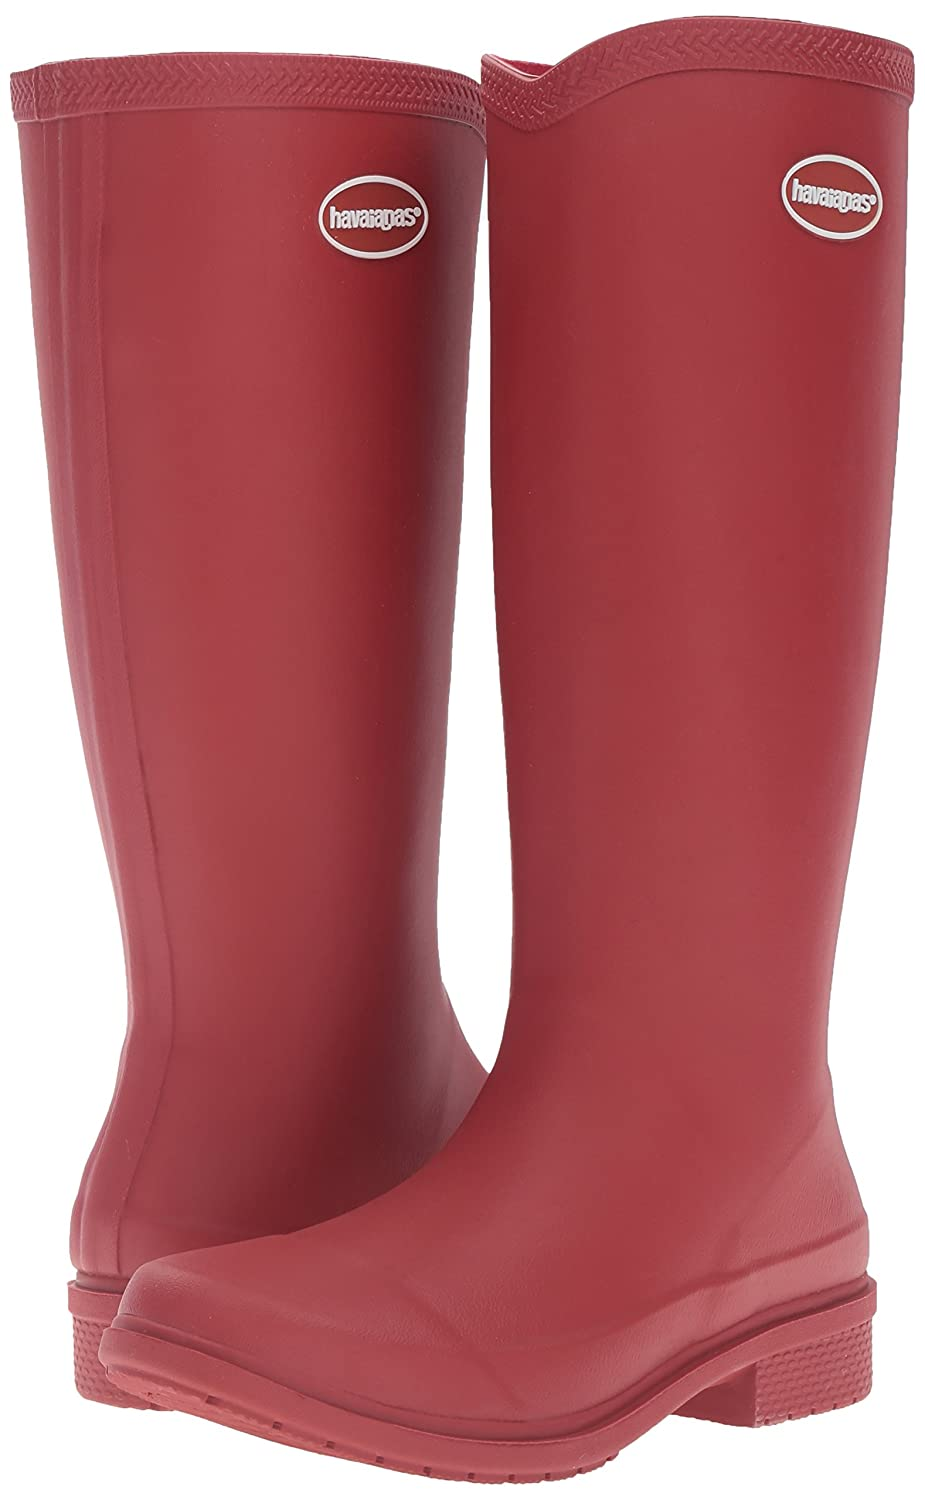 Havaianas Women's Galochas Hi Matte Rainboot Rain Boot B01H6RGDX2 40 BR/10 M US|Ruby Red